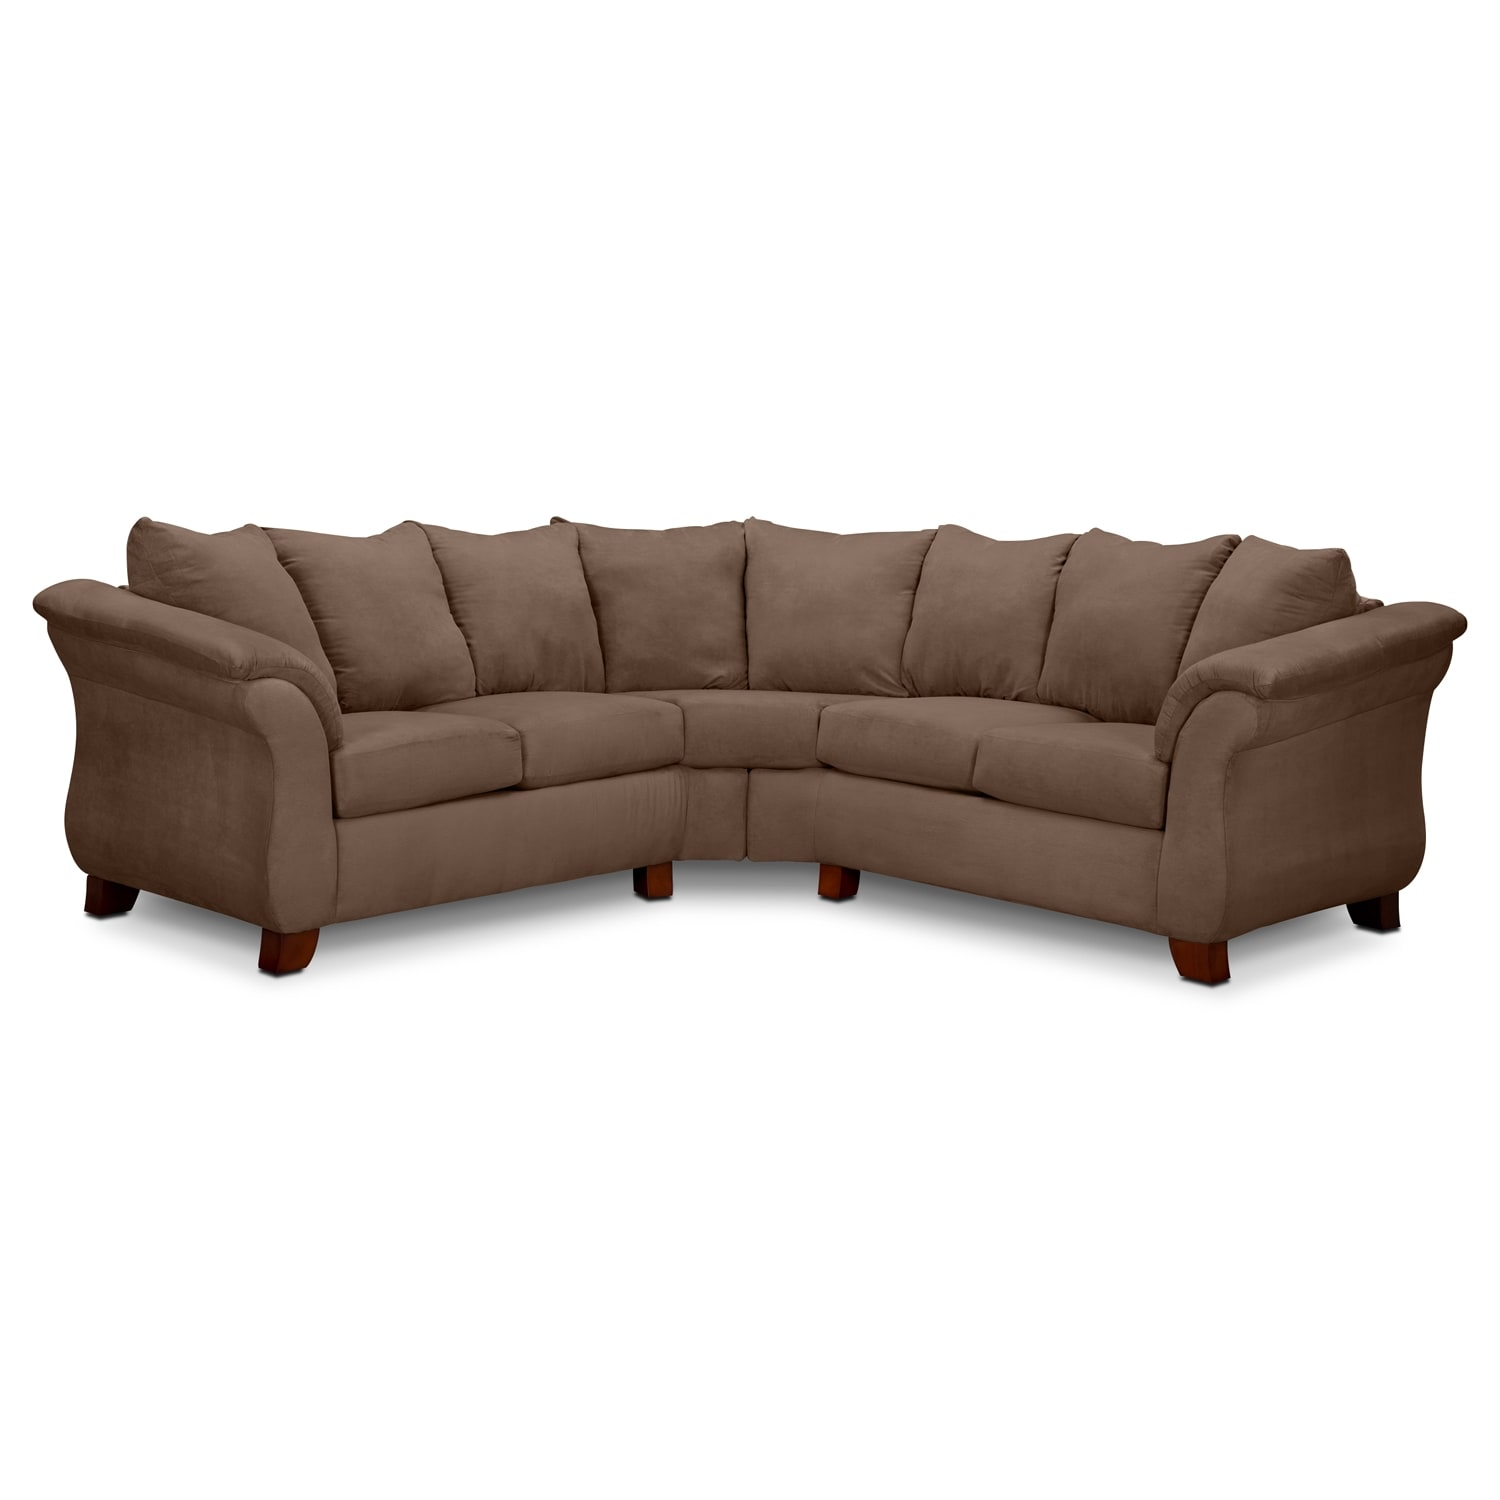 American Signature Furniture Clearance Store: Adrian 2-Piece Sectional - Taupe